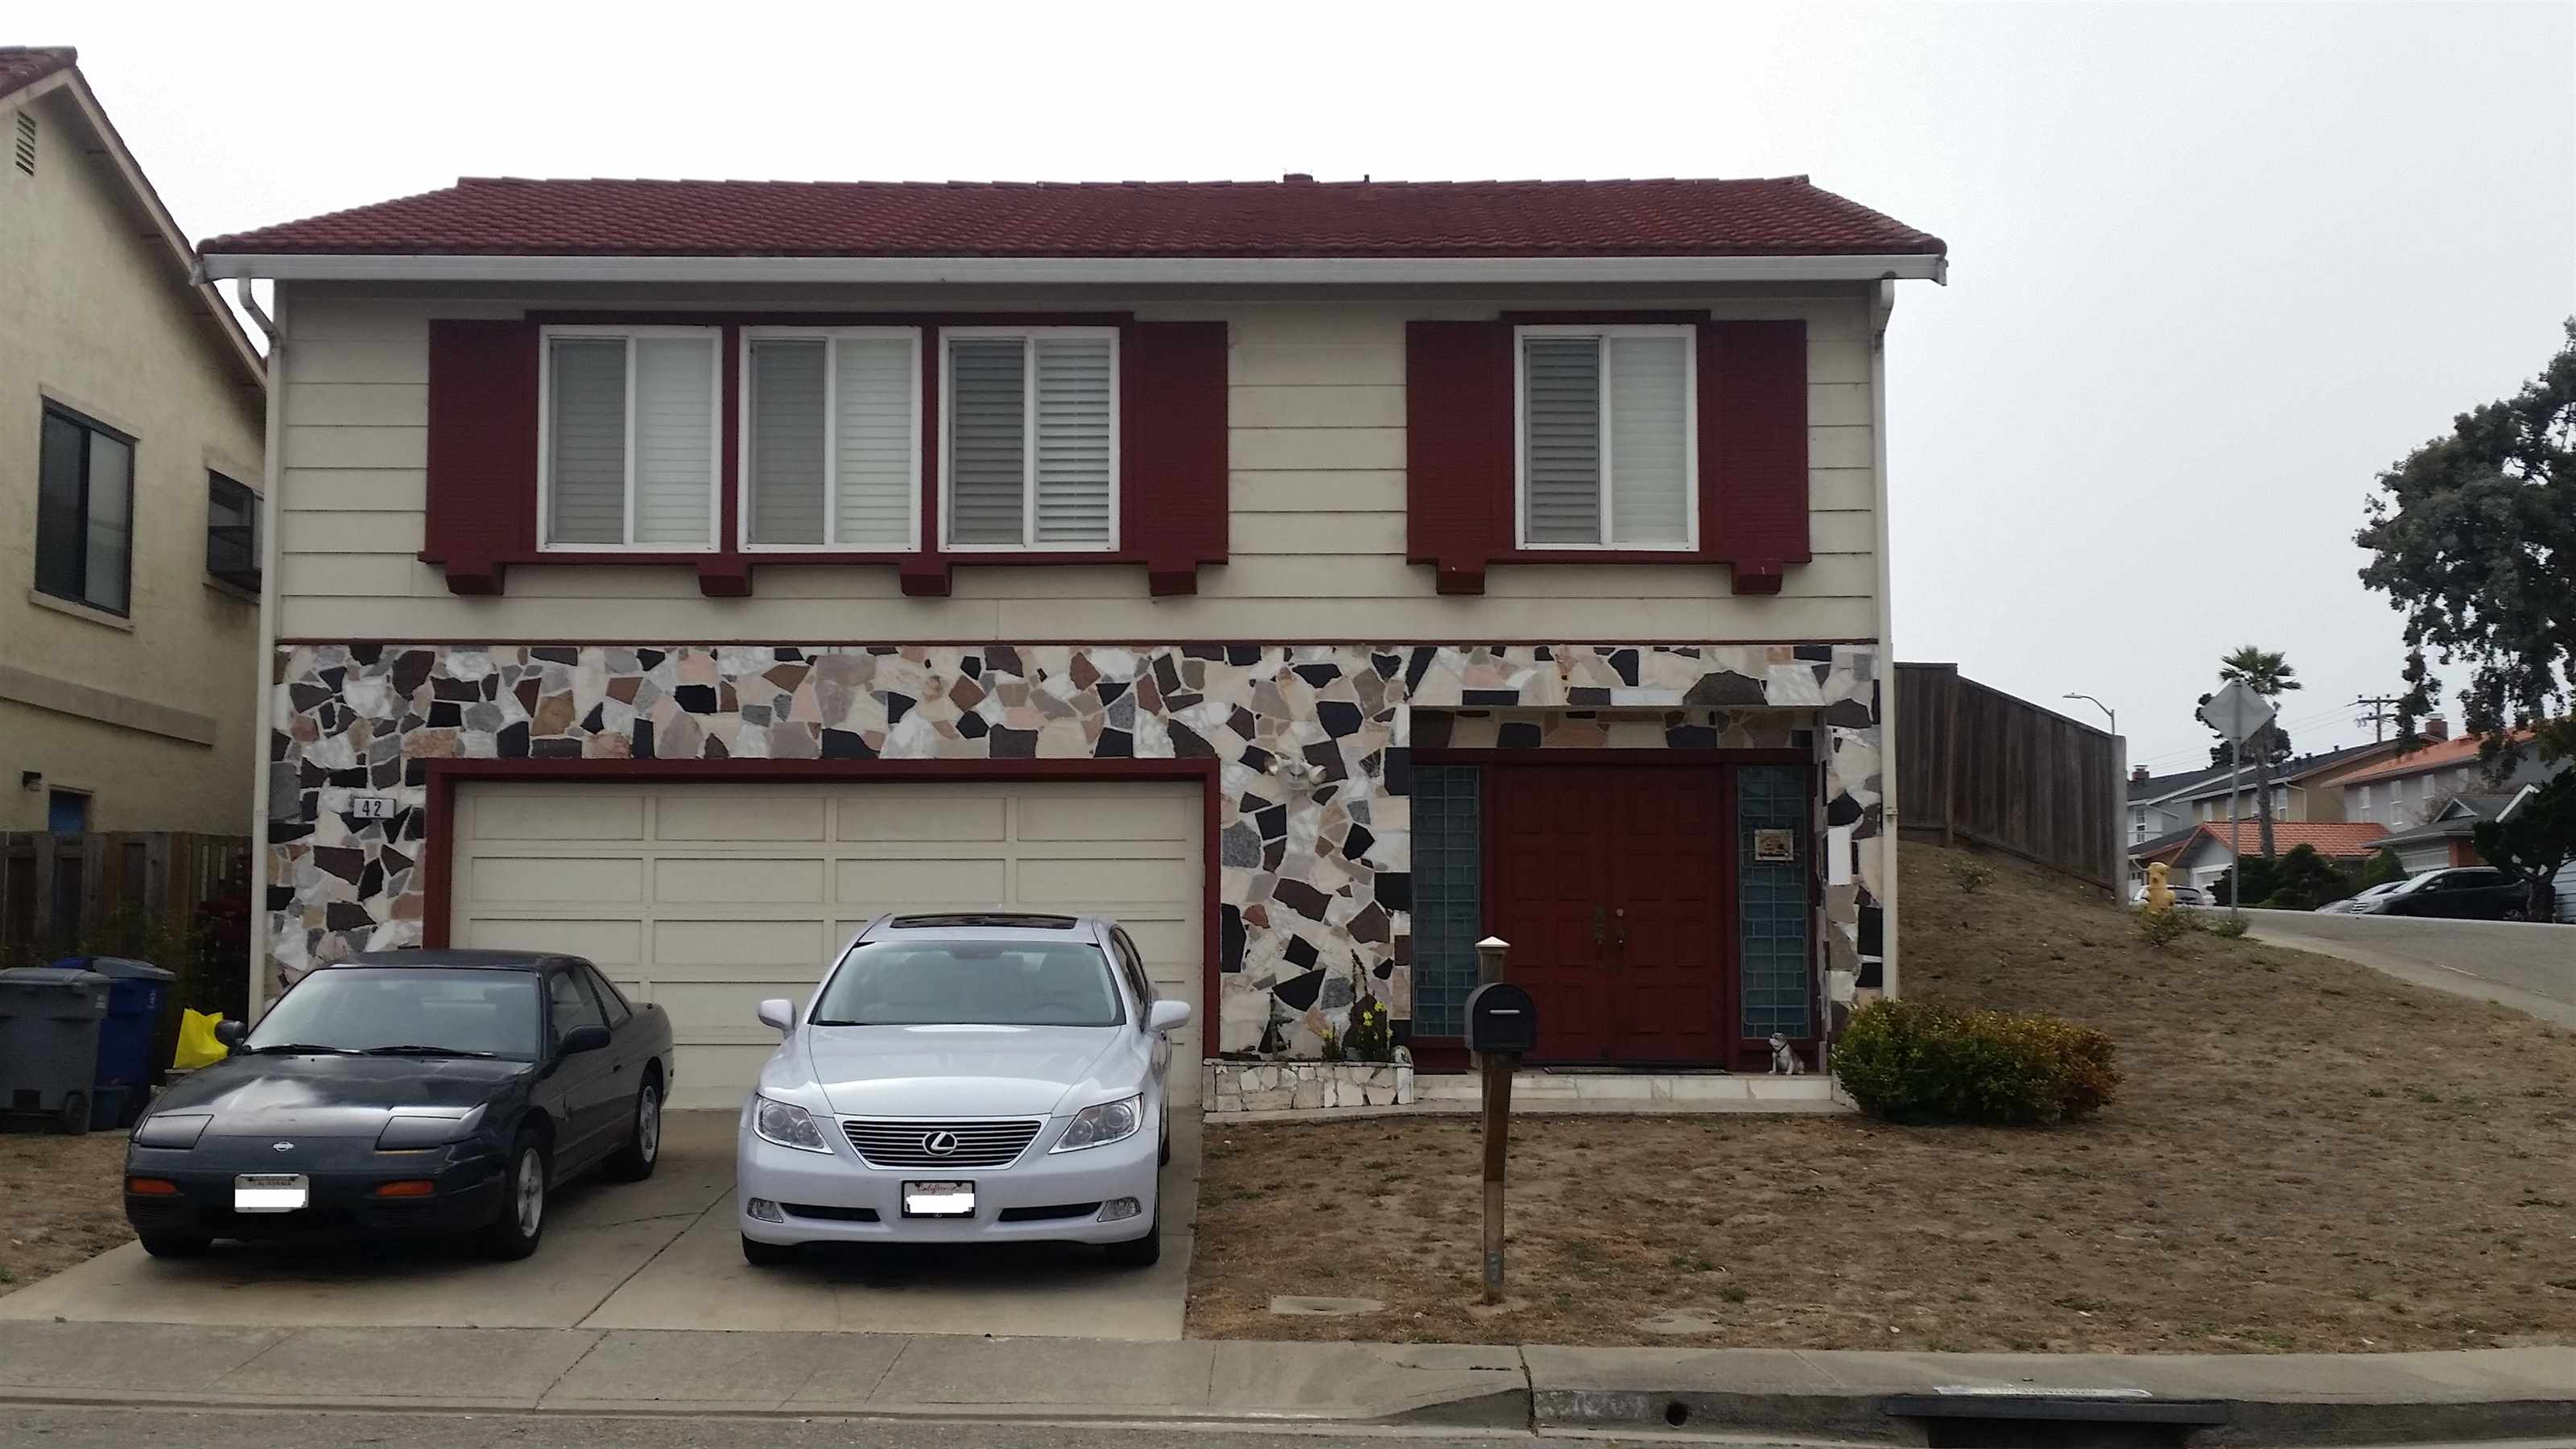 42 Vista Ct, South San Francisco, CA 94080